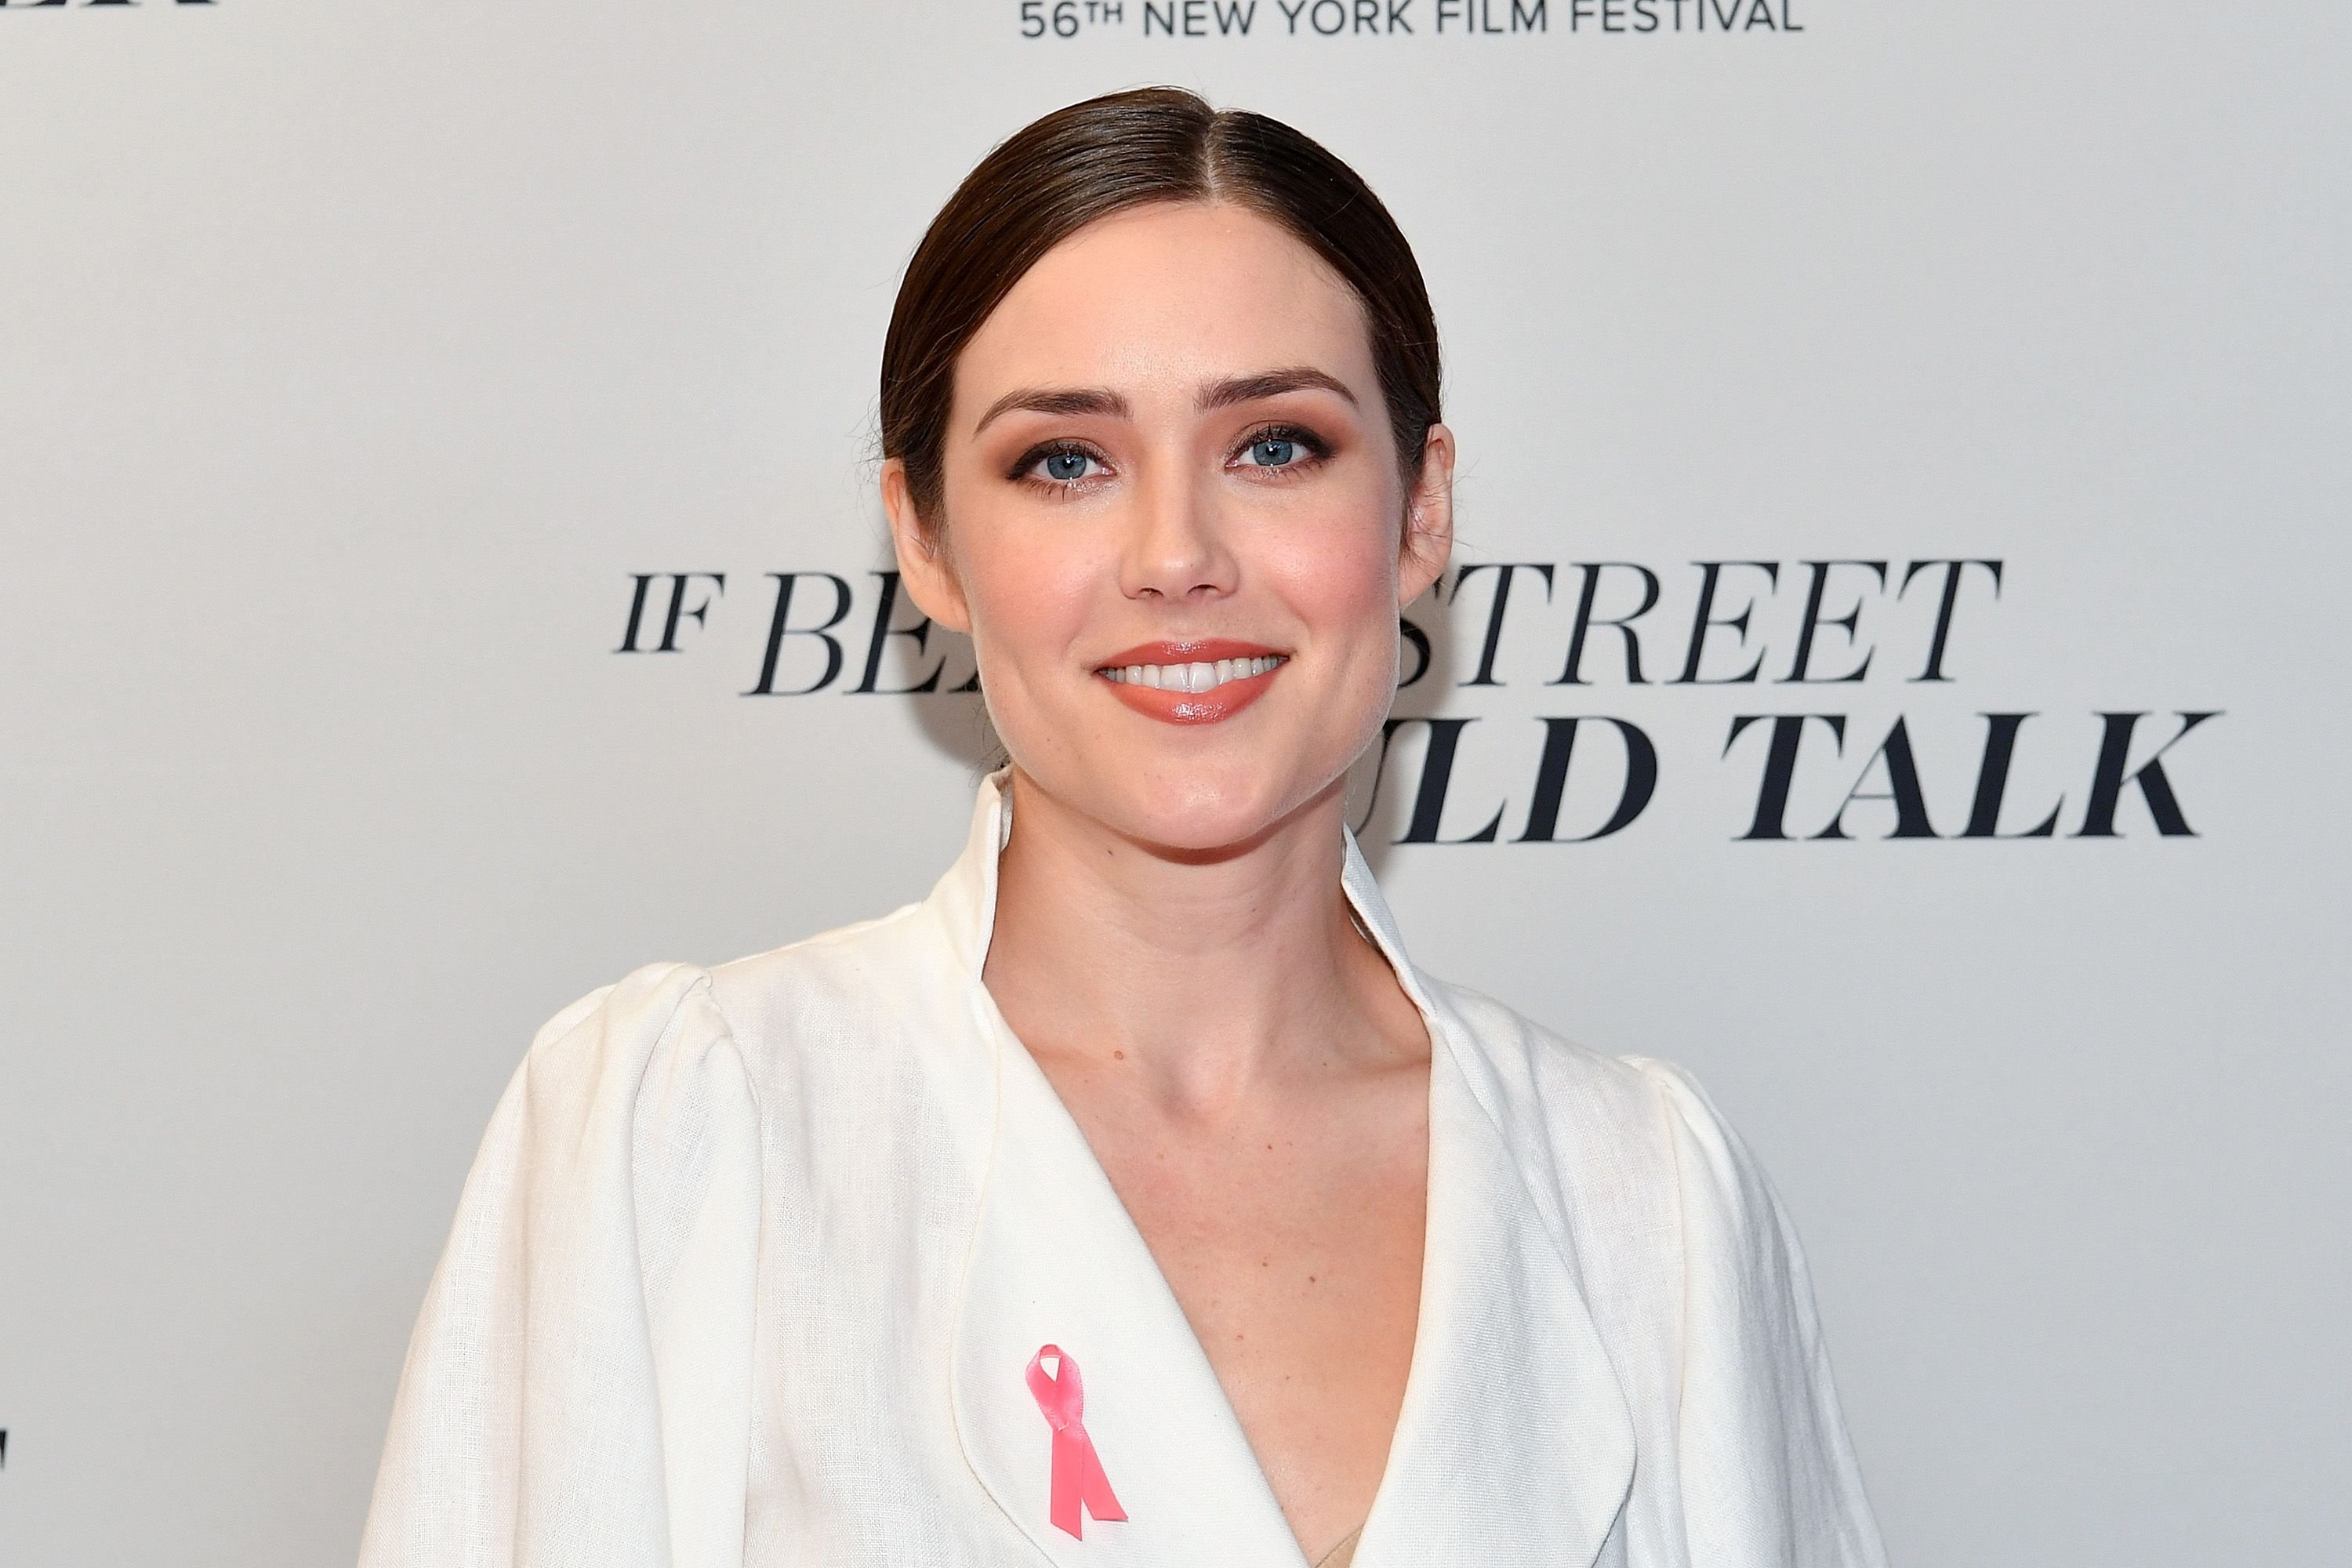 """Megan Boone at the premiere of """"If Beale Street Could Talk"""" at the 56th New York Film Festival in 2018 